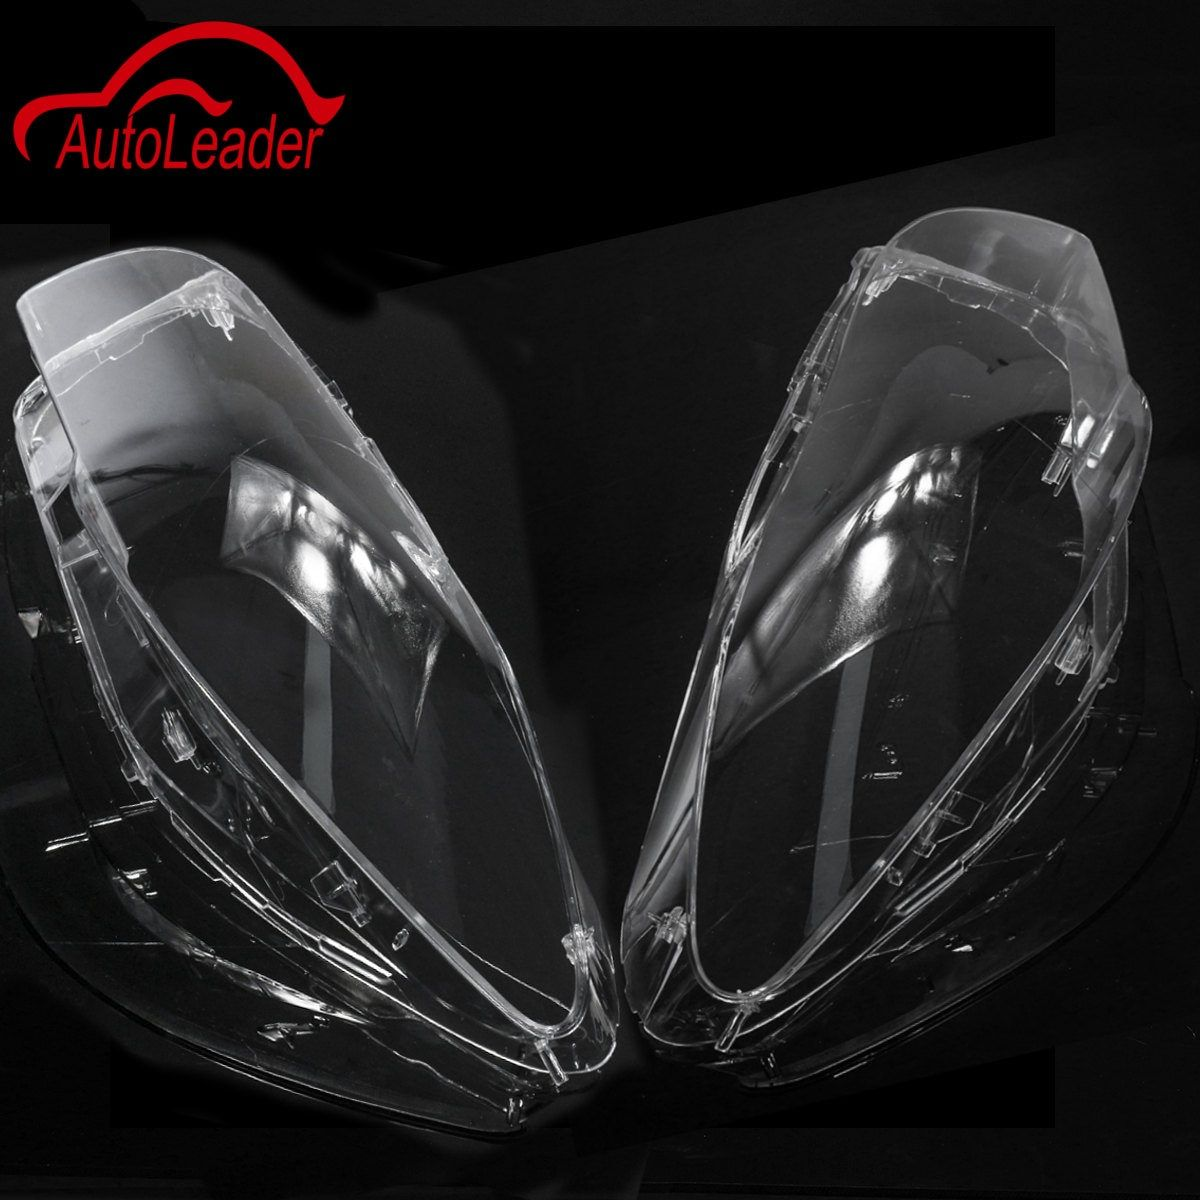 Car Headlight Shell Clear Light Lens Cover Right / Left Side For BMW 5series F10 F18 520 523 525 535 530 2010-2014